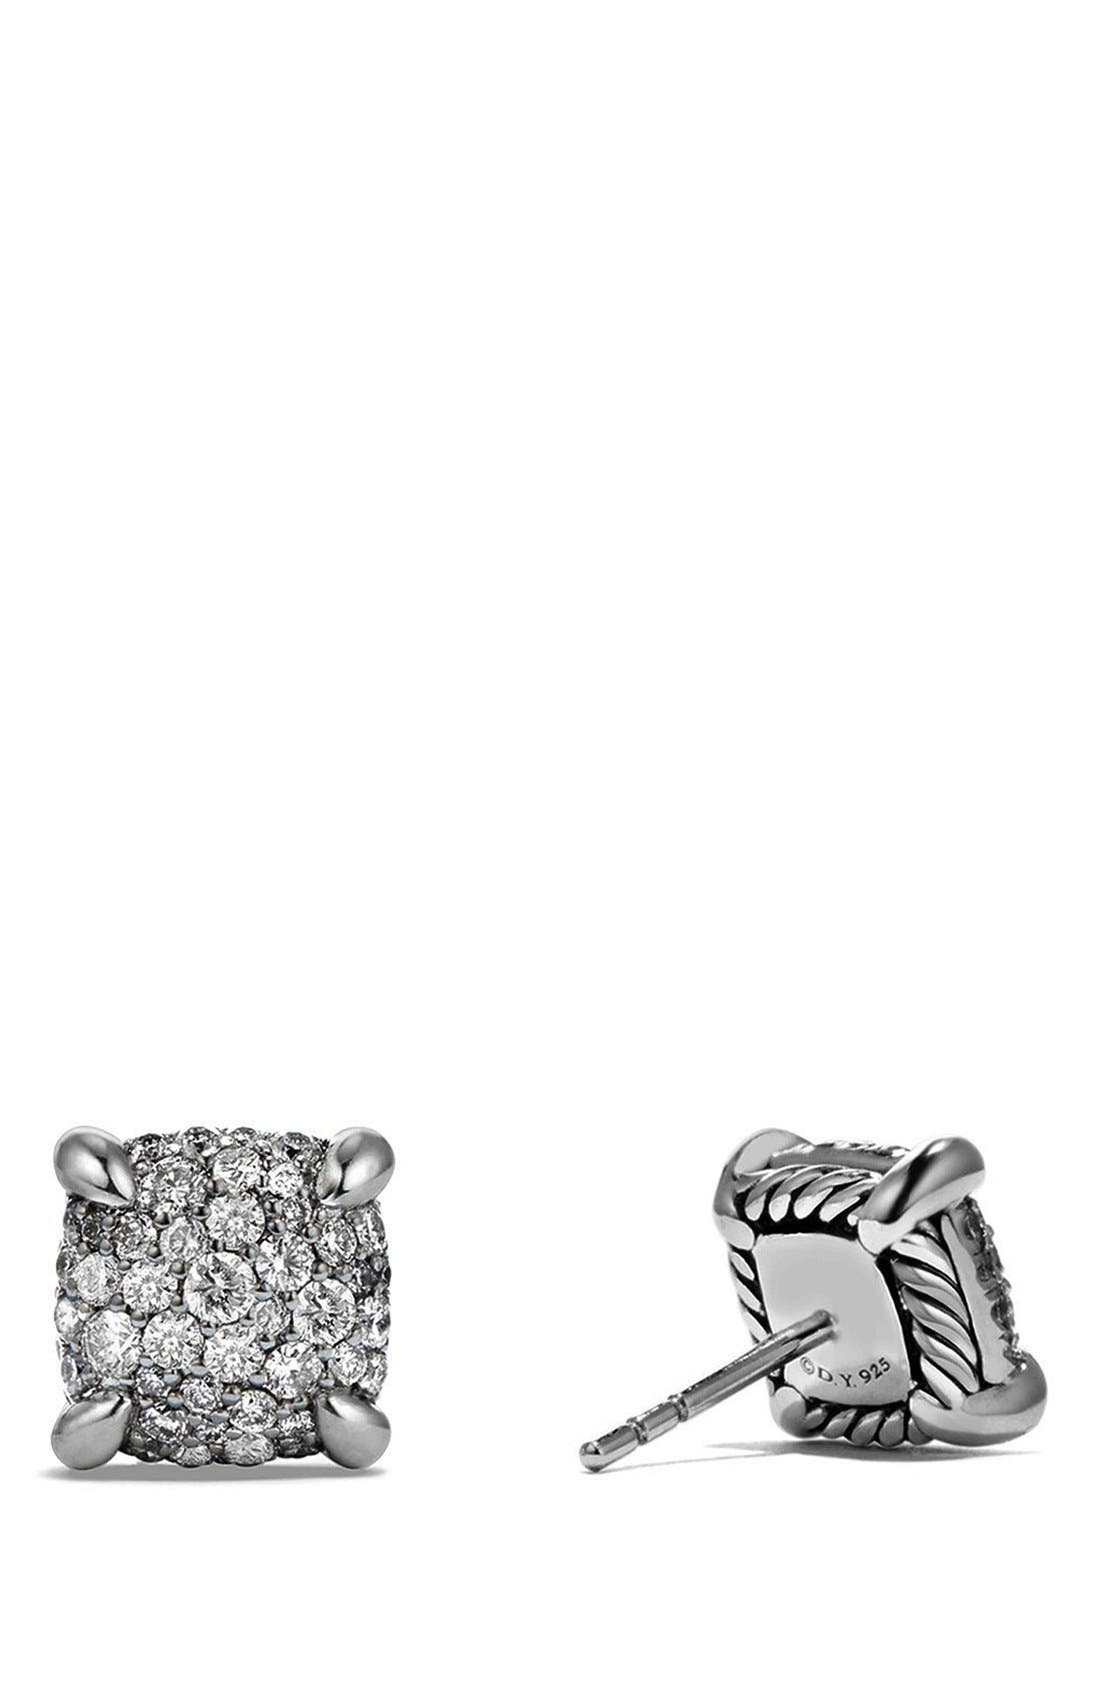 'Châtelaine' Earrings with Diamonds,                             Alternate thumbnail 2, color,                             Silver